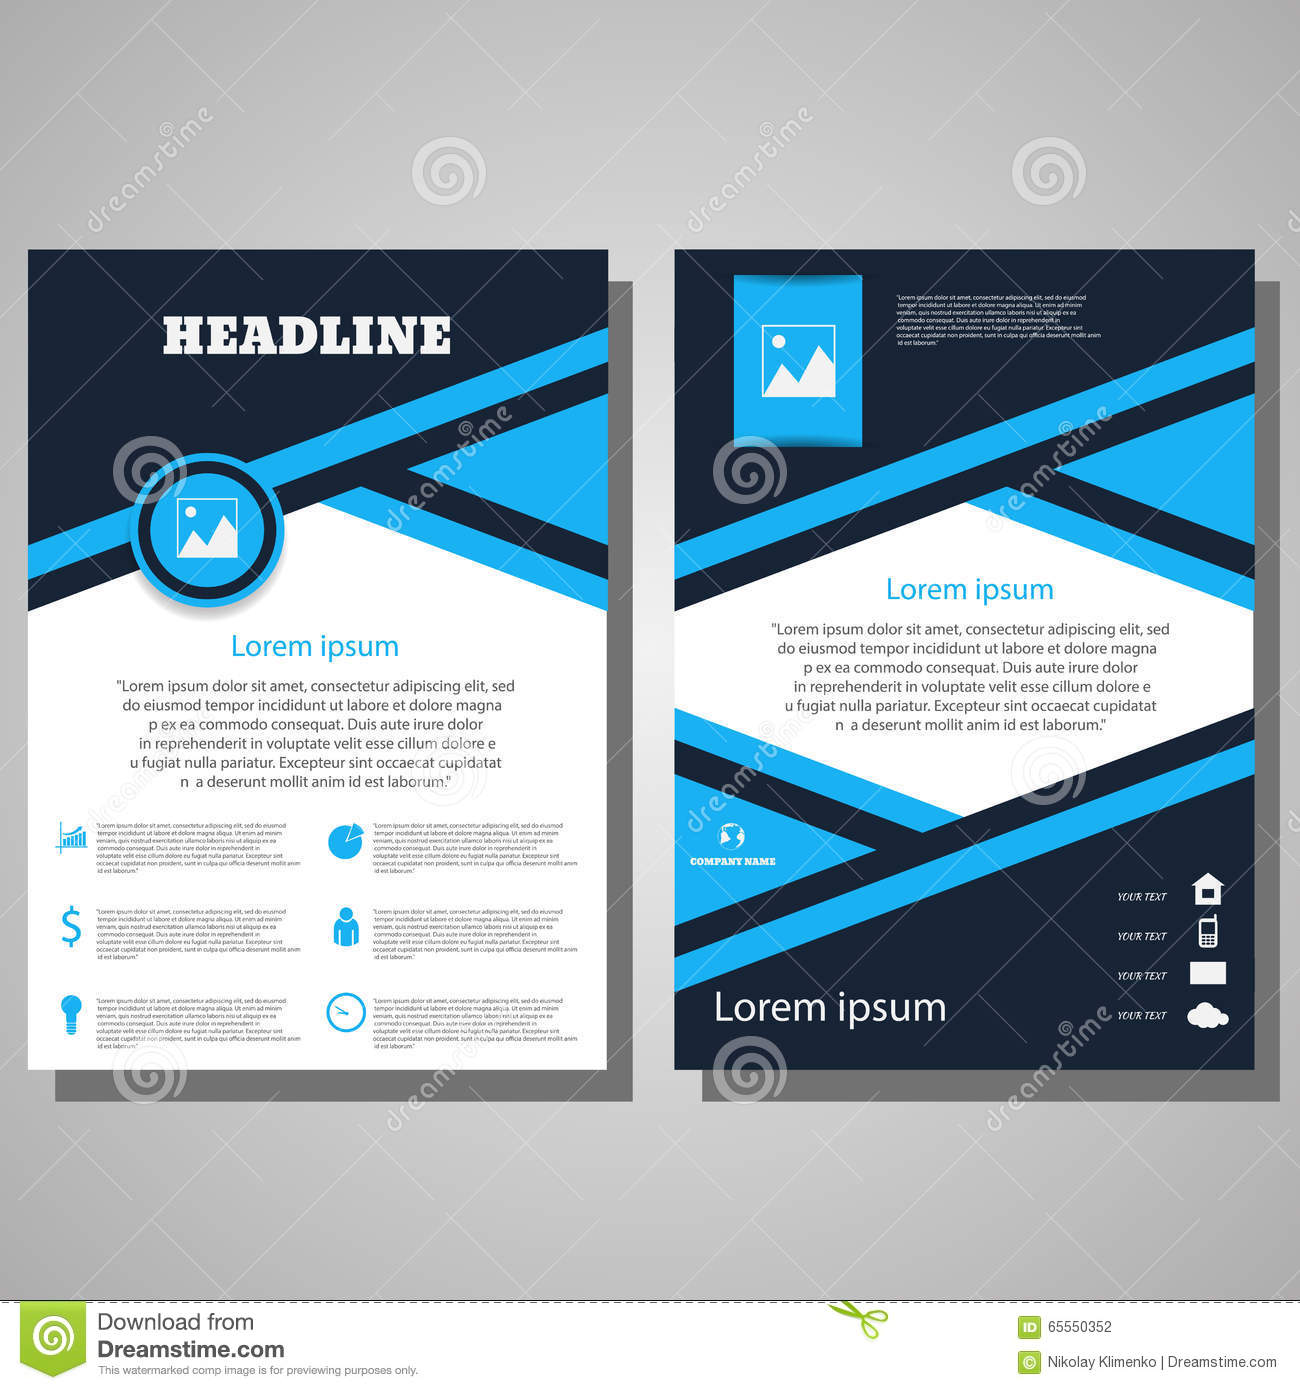 Famous 1 Page Resume Format Free Download Small 100 Free Resume Builder And Download Round 100 Free Resume Builder Online 1099 Contract Template Young 15 Year Old Resume Blue2 Circle Template Brochure Blue Flyer Design Layout Template.infographic E Stock ..